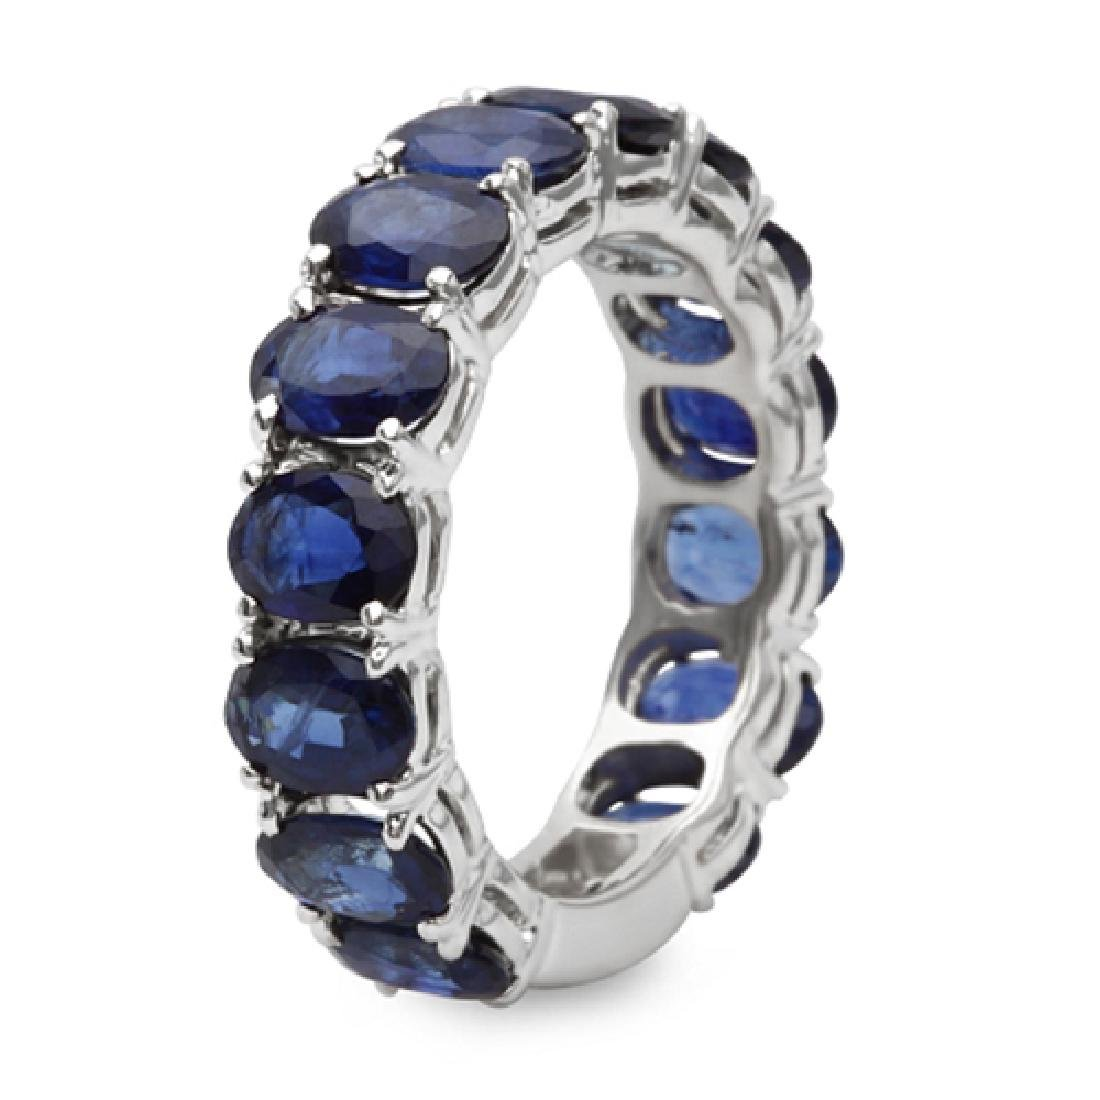 6.70 Carat Natural Sapphire 18K Solid White Gold  Ring - 2